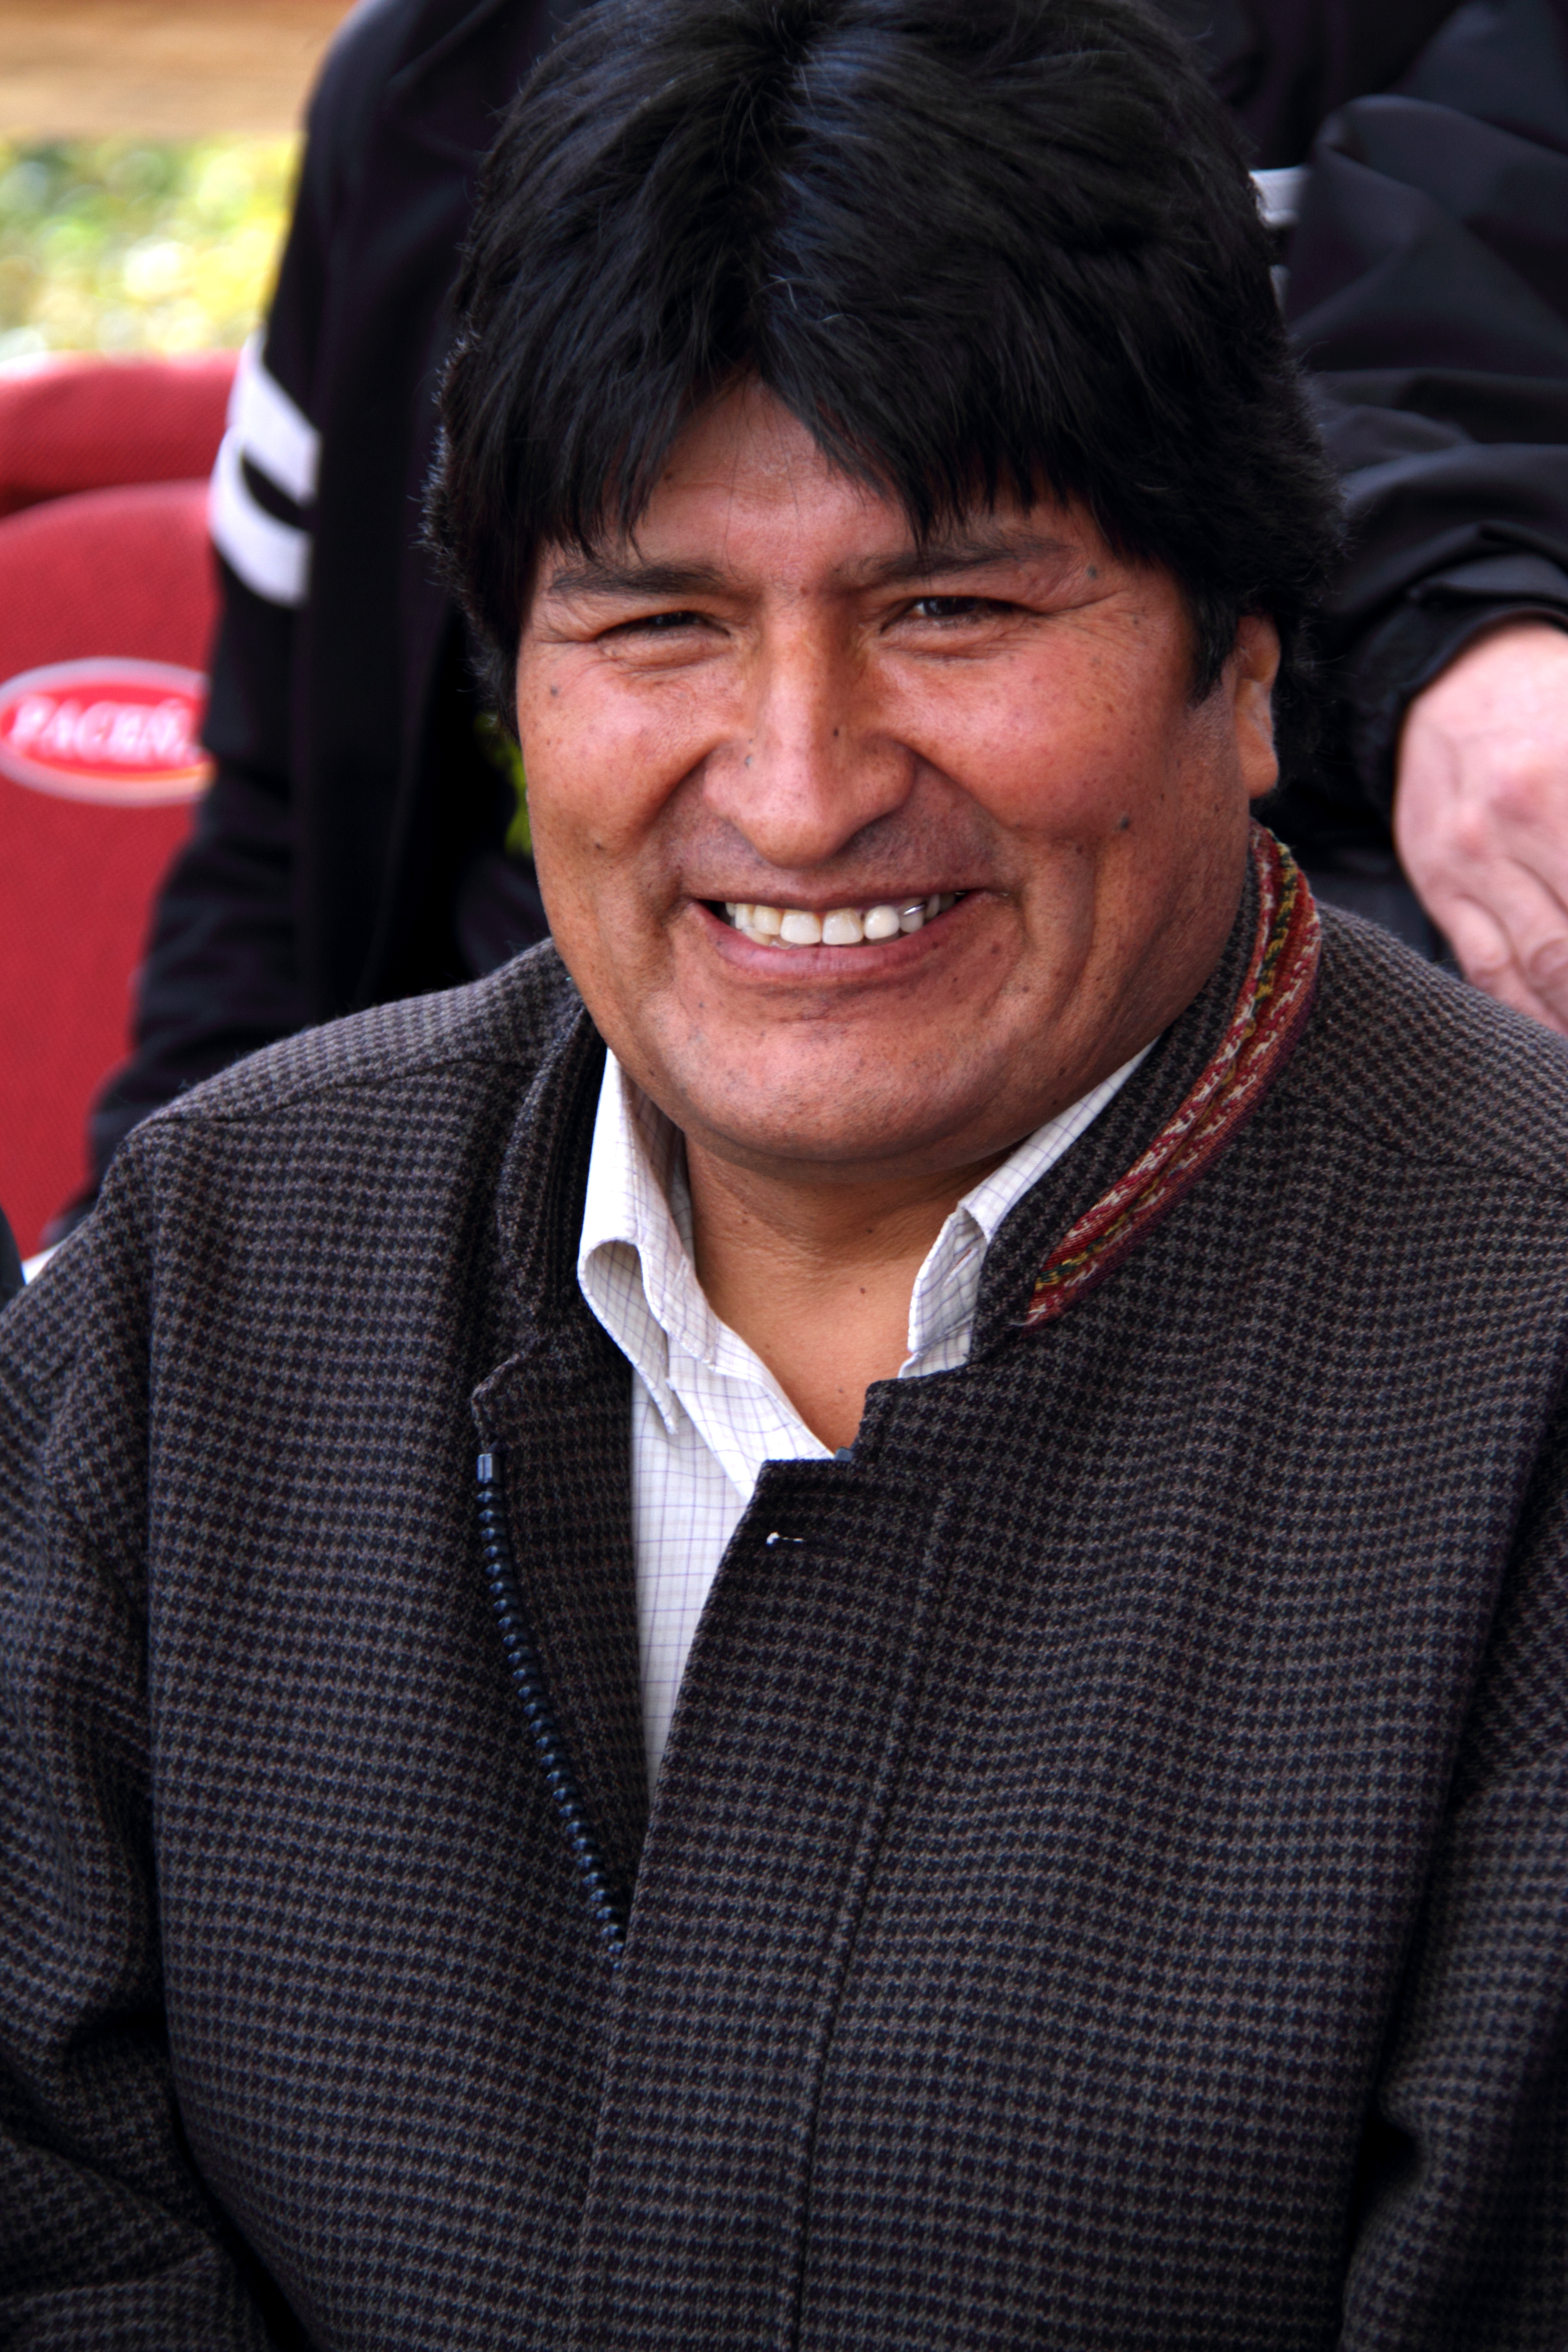 evo morales Currently serving his third term as the president of the bolivia, evo morales is  known for implementing various social and economic reforms.